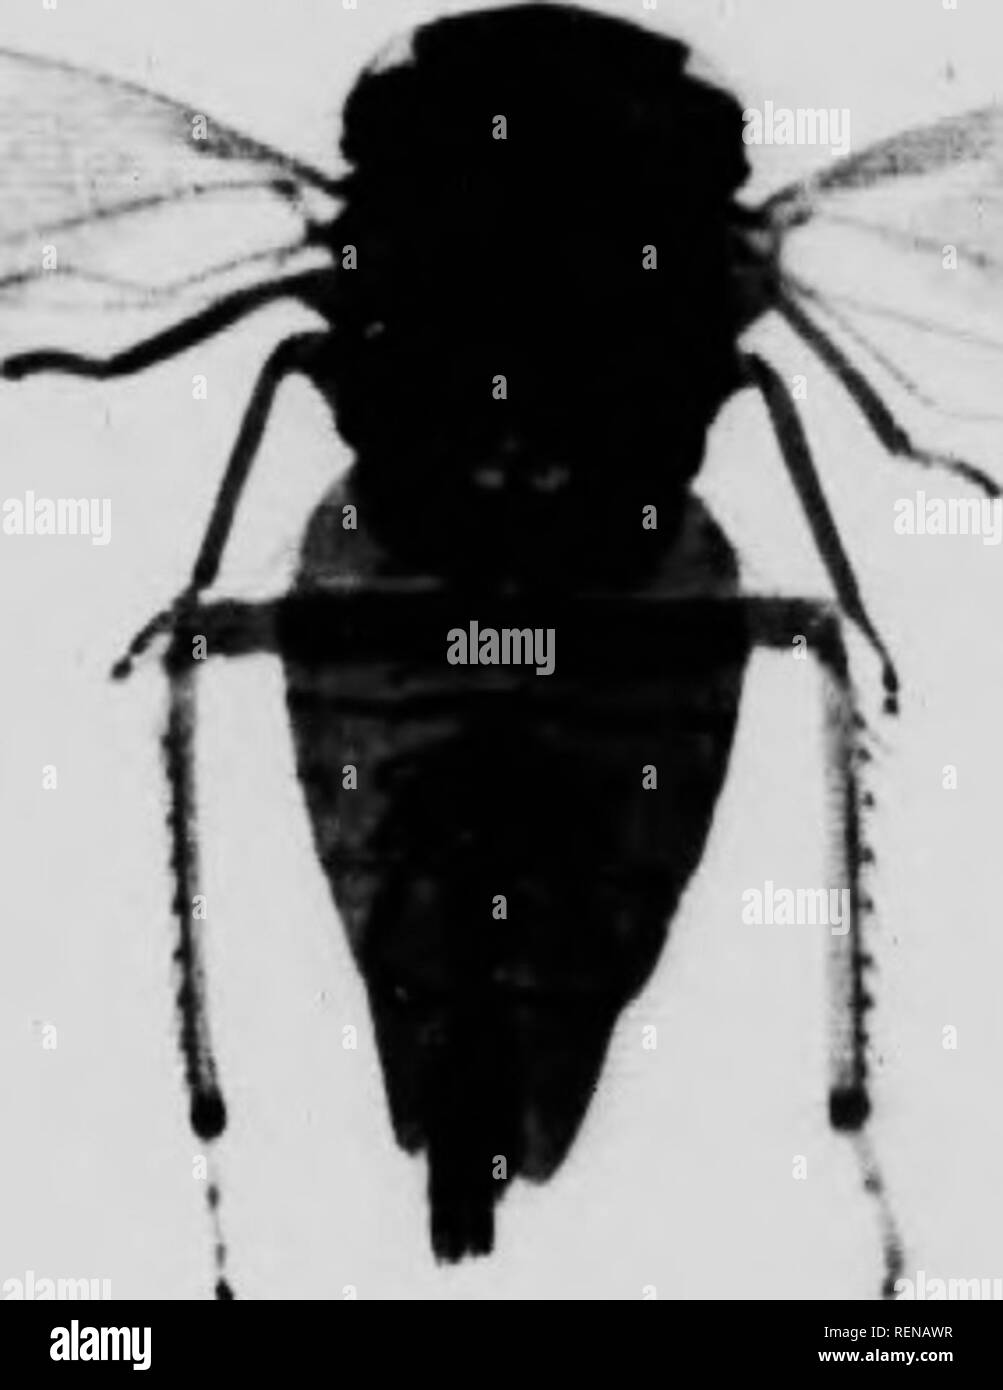 Smallest Form Black and White Stock Photos & Images - Alamy